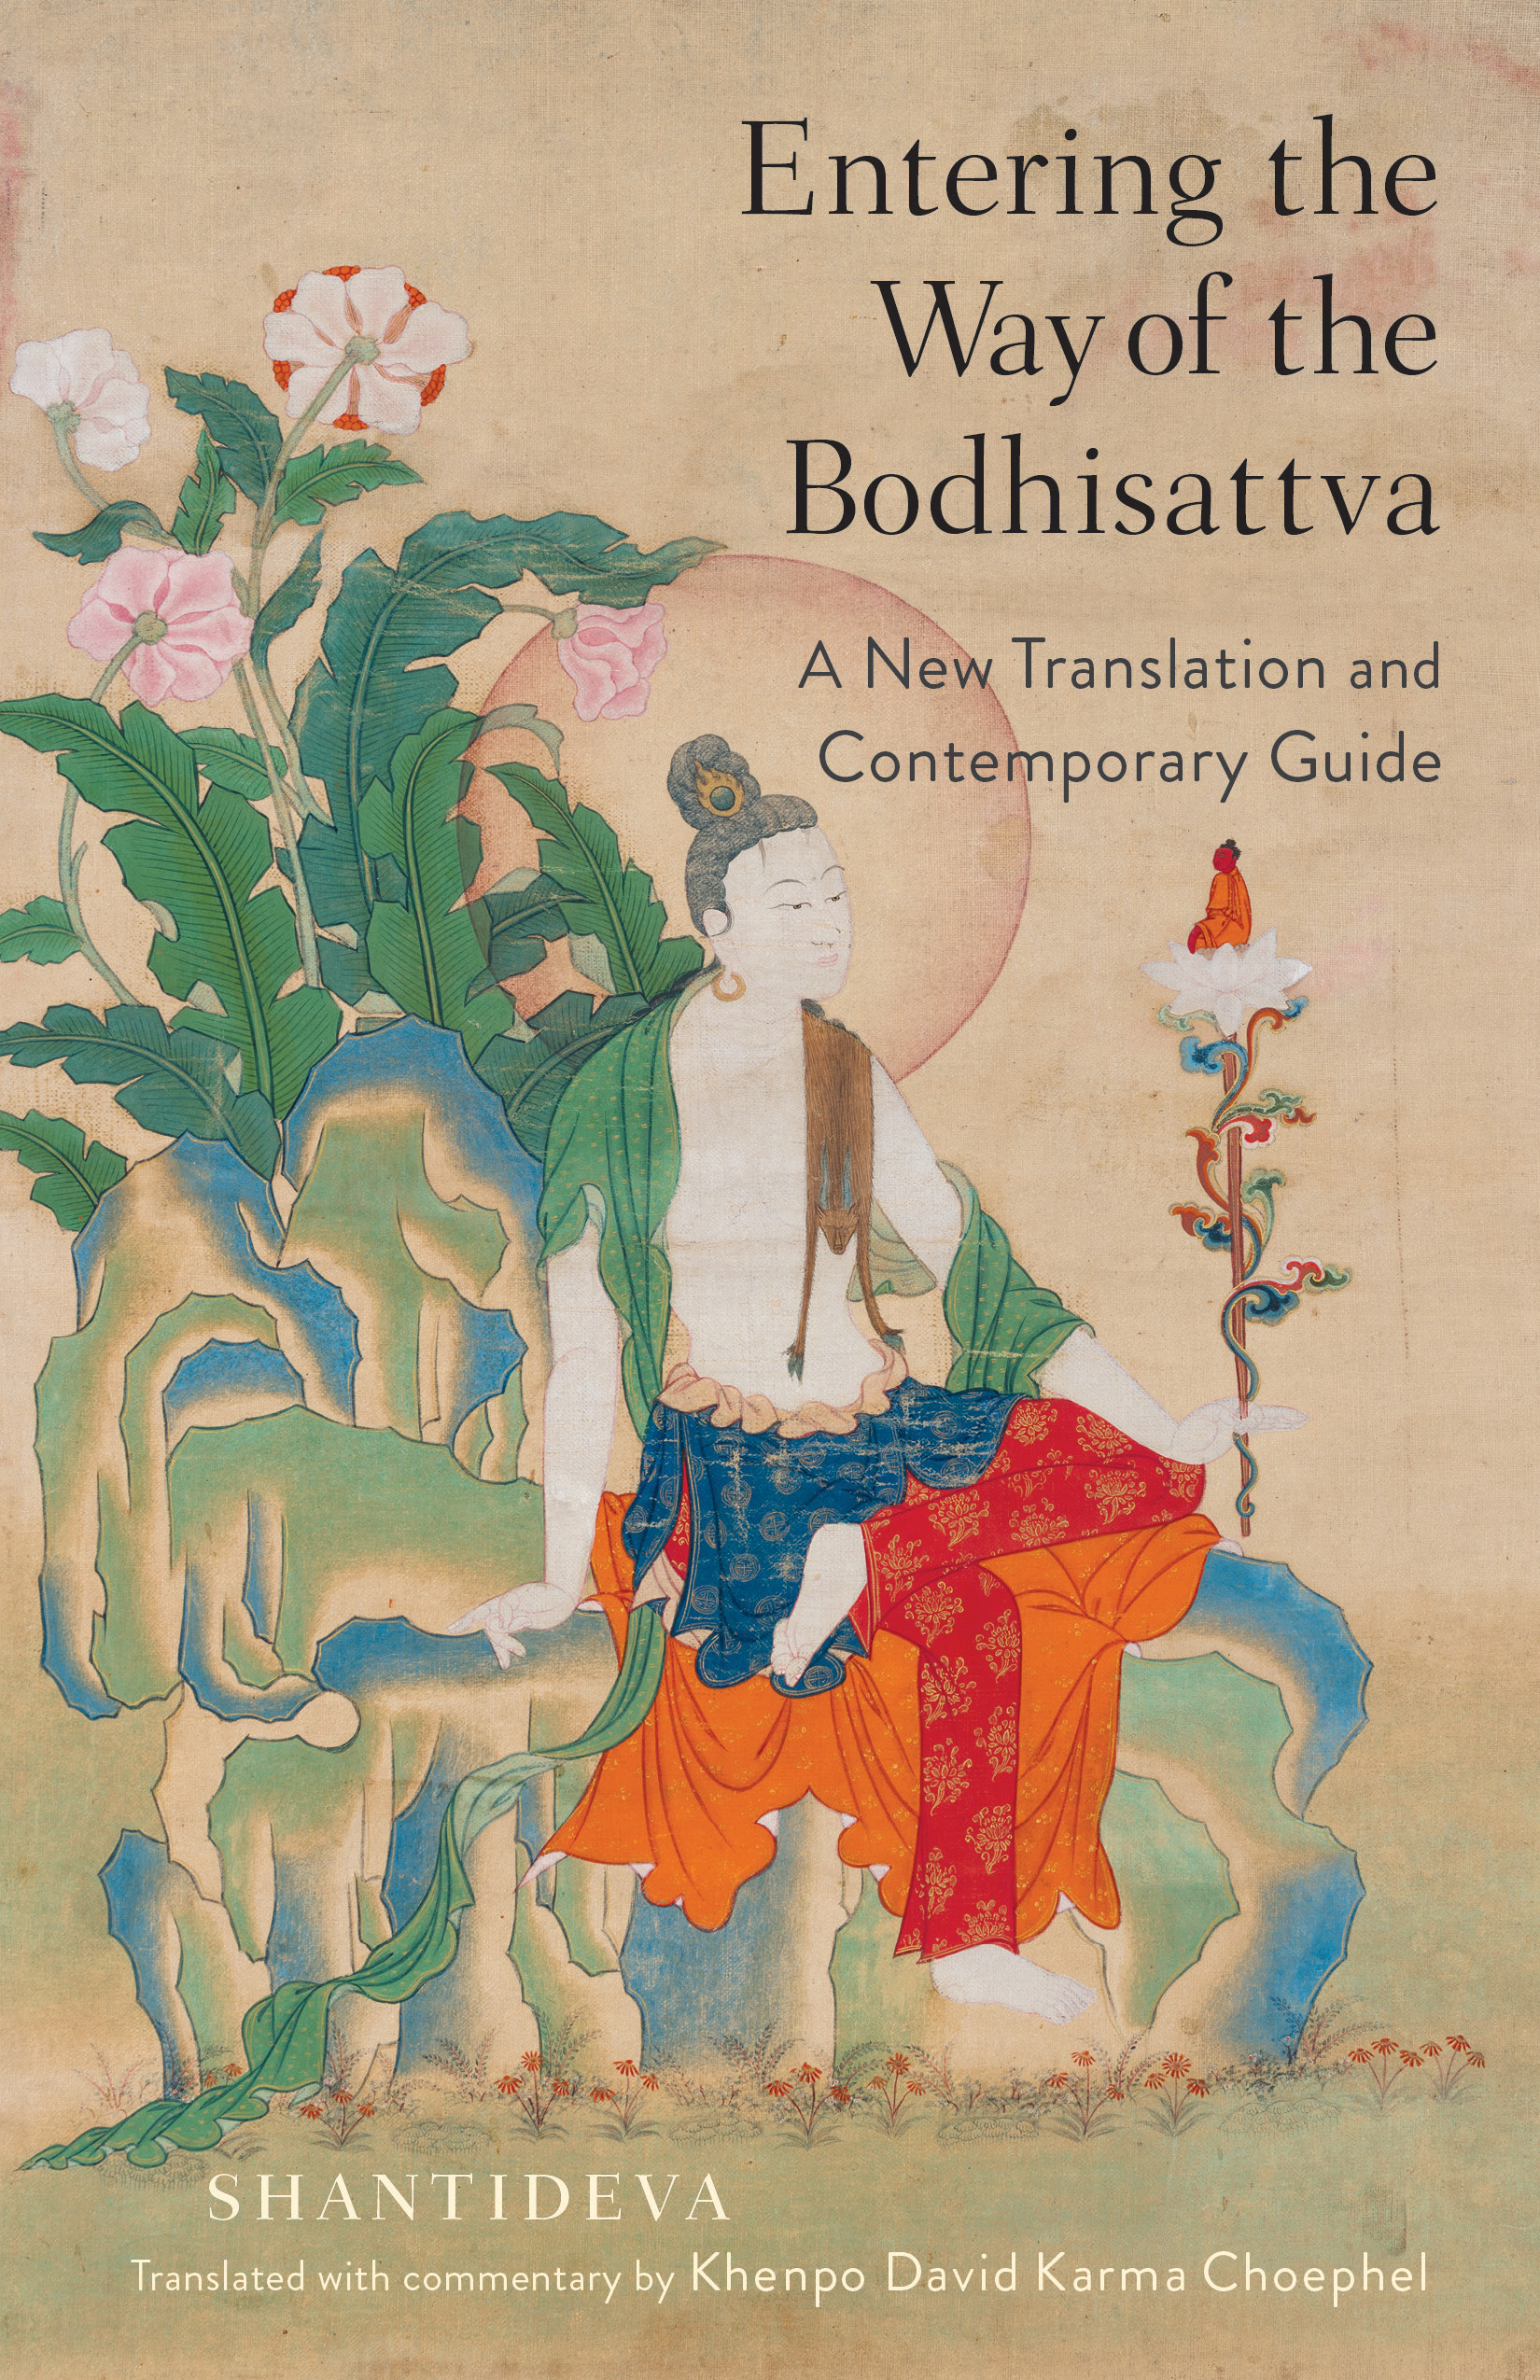 Entering the Way of the Bodhisattva